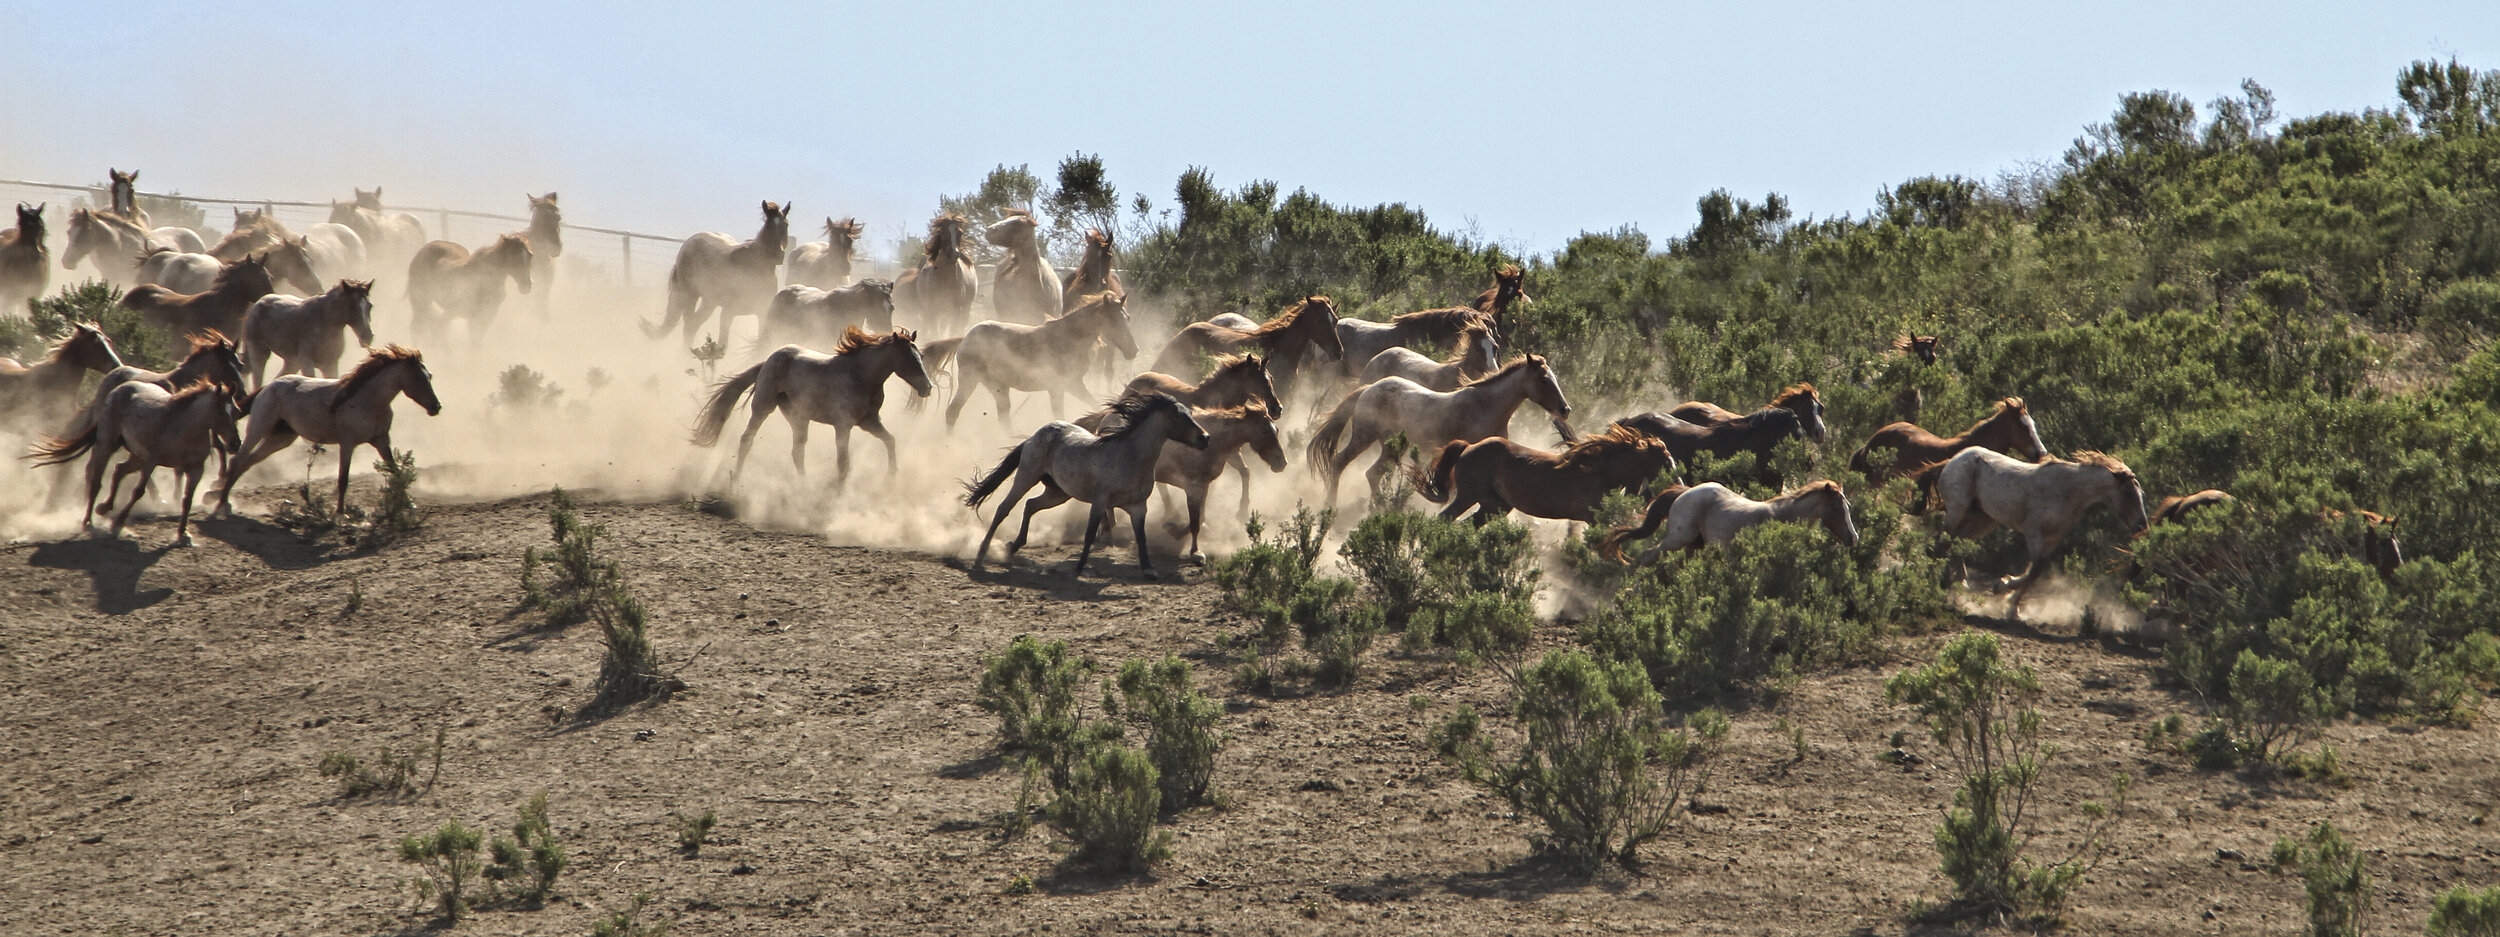 A herd of horses running at Return to Freedom Wild Horse Conservation, in Lompoc, CA.